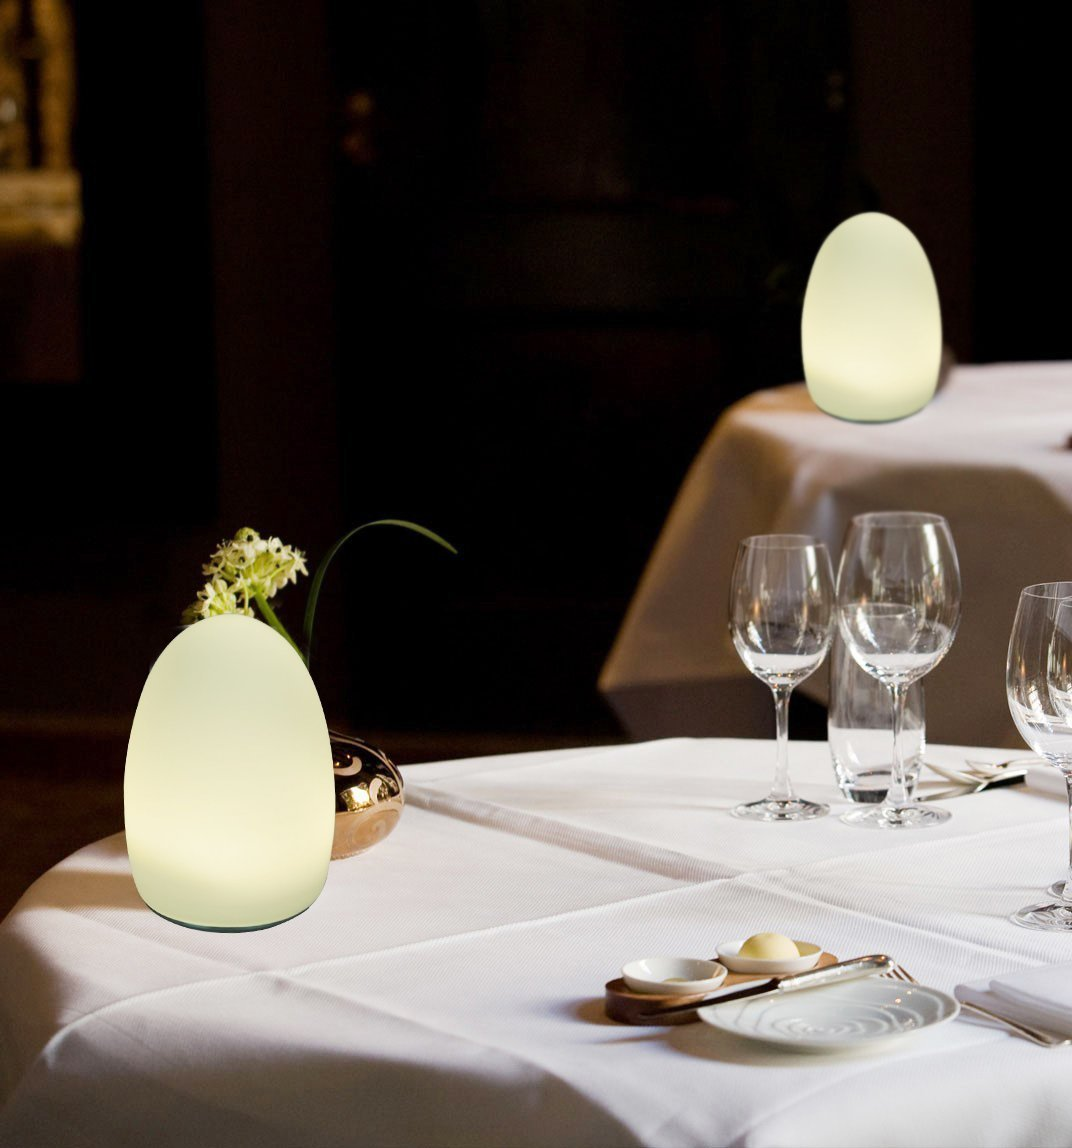 HERO-LED TB-EG-01 Restaurant Table Lighting, Wireless Induction Rechargeable LED Cordless Table Lamps with Remote Timer Controller, Set of 2, Egg 01 by HERO-LED (Image #6)